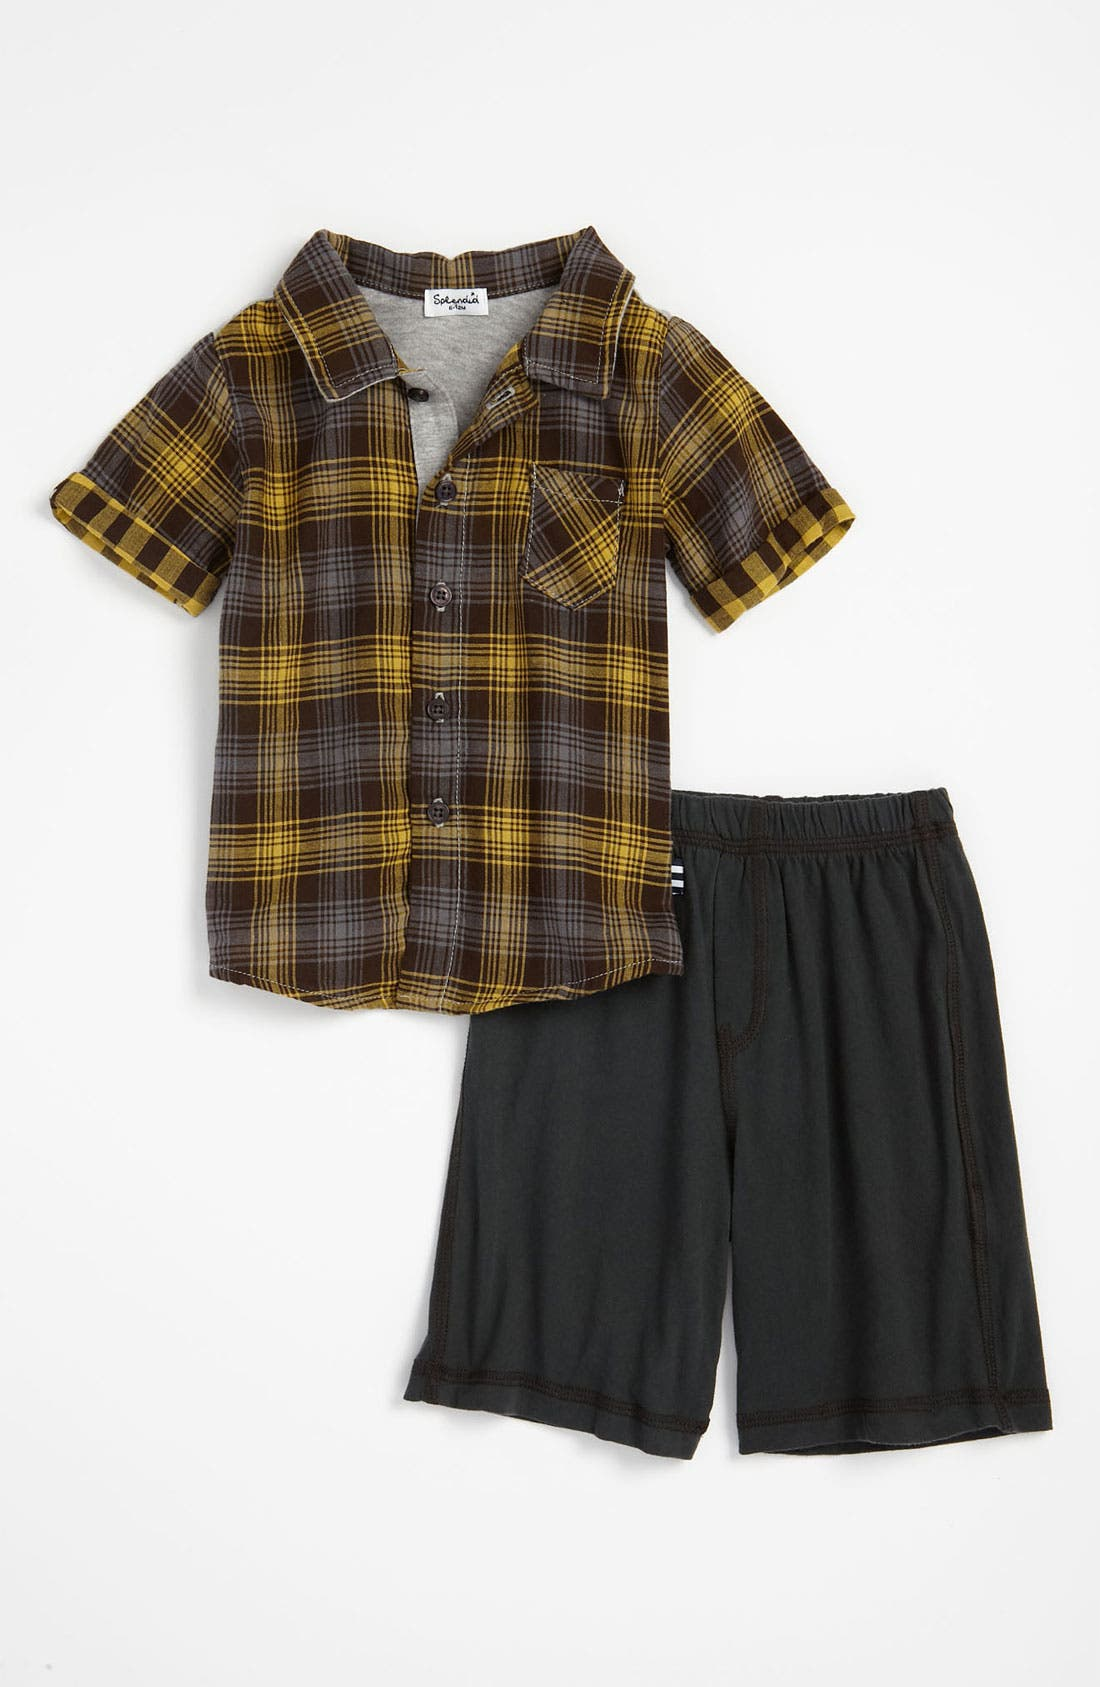 Alternate Image 1 Selected - Splendid 'Backyard' Plaid Shirt & Shorts (Infant)